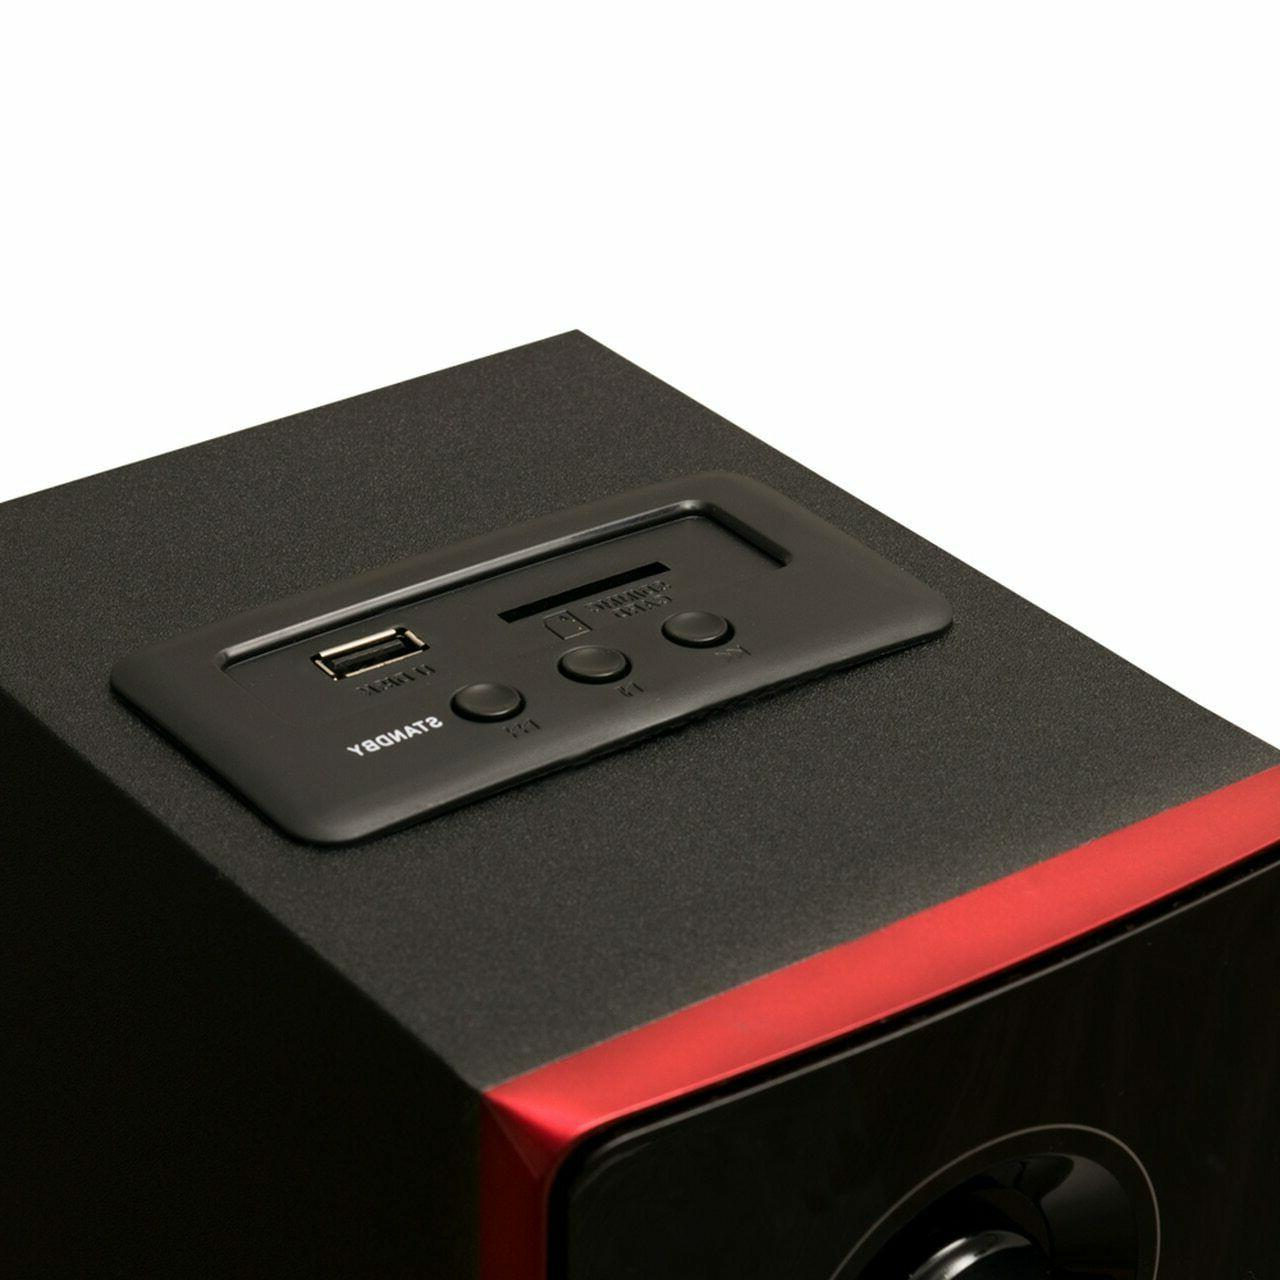 AA2103 BLUETOOTH 2.1 SPEAKER SYSTEM COMPUTER GAMING